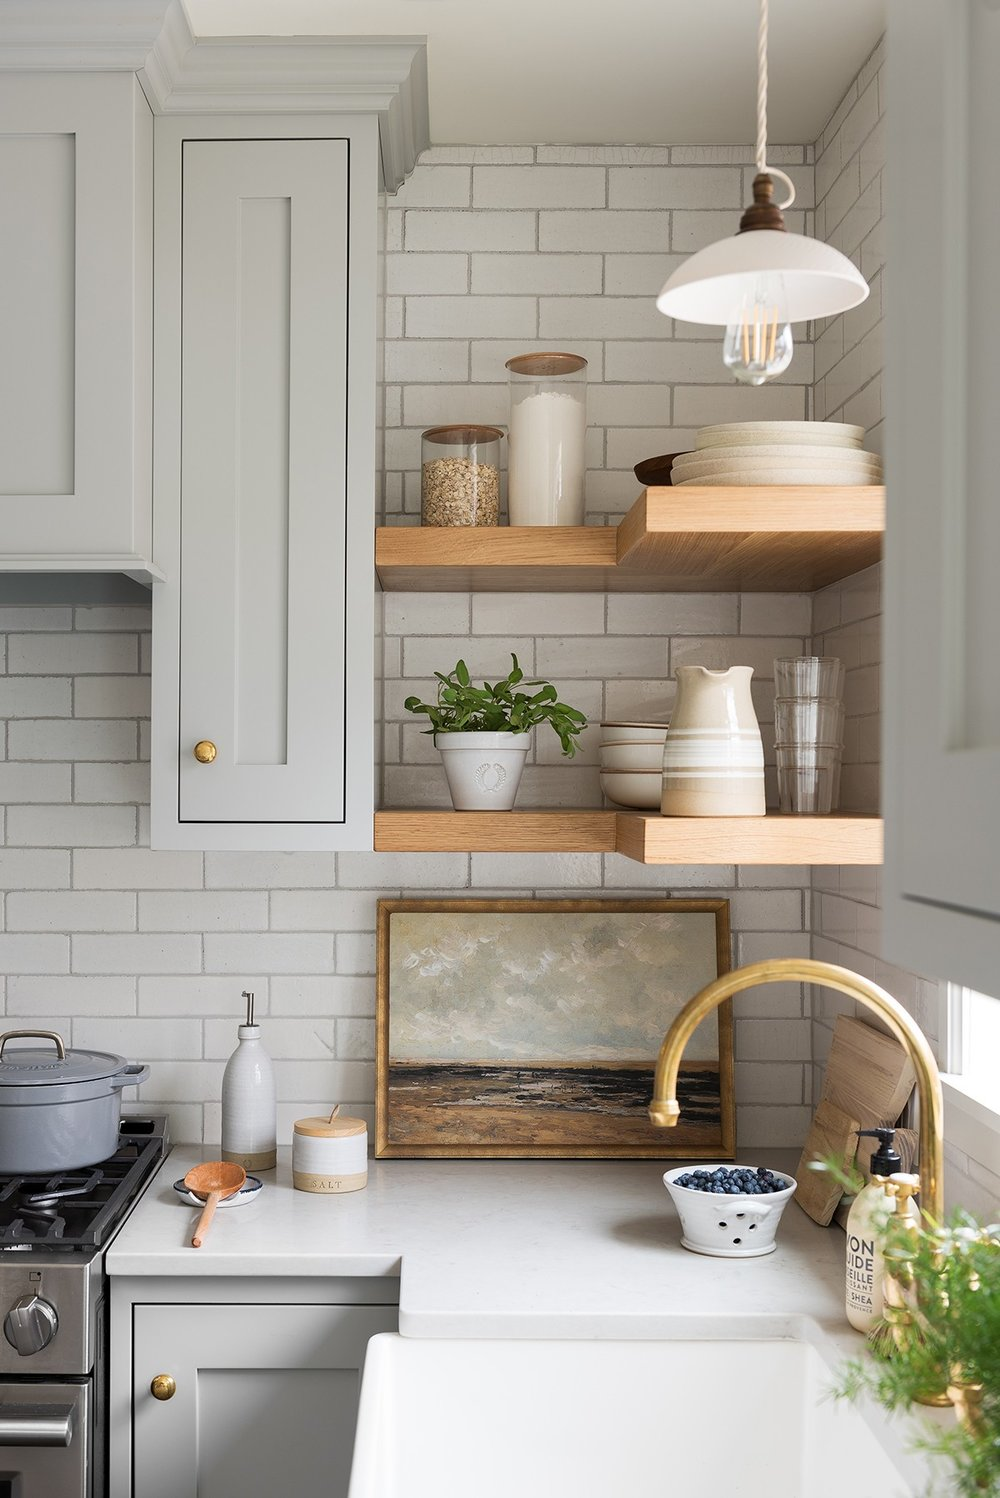 Tinge Floral (via SM) // neutral cabinet paint colors for kitchens // the Grit and Polish